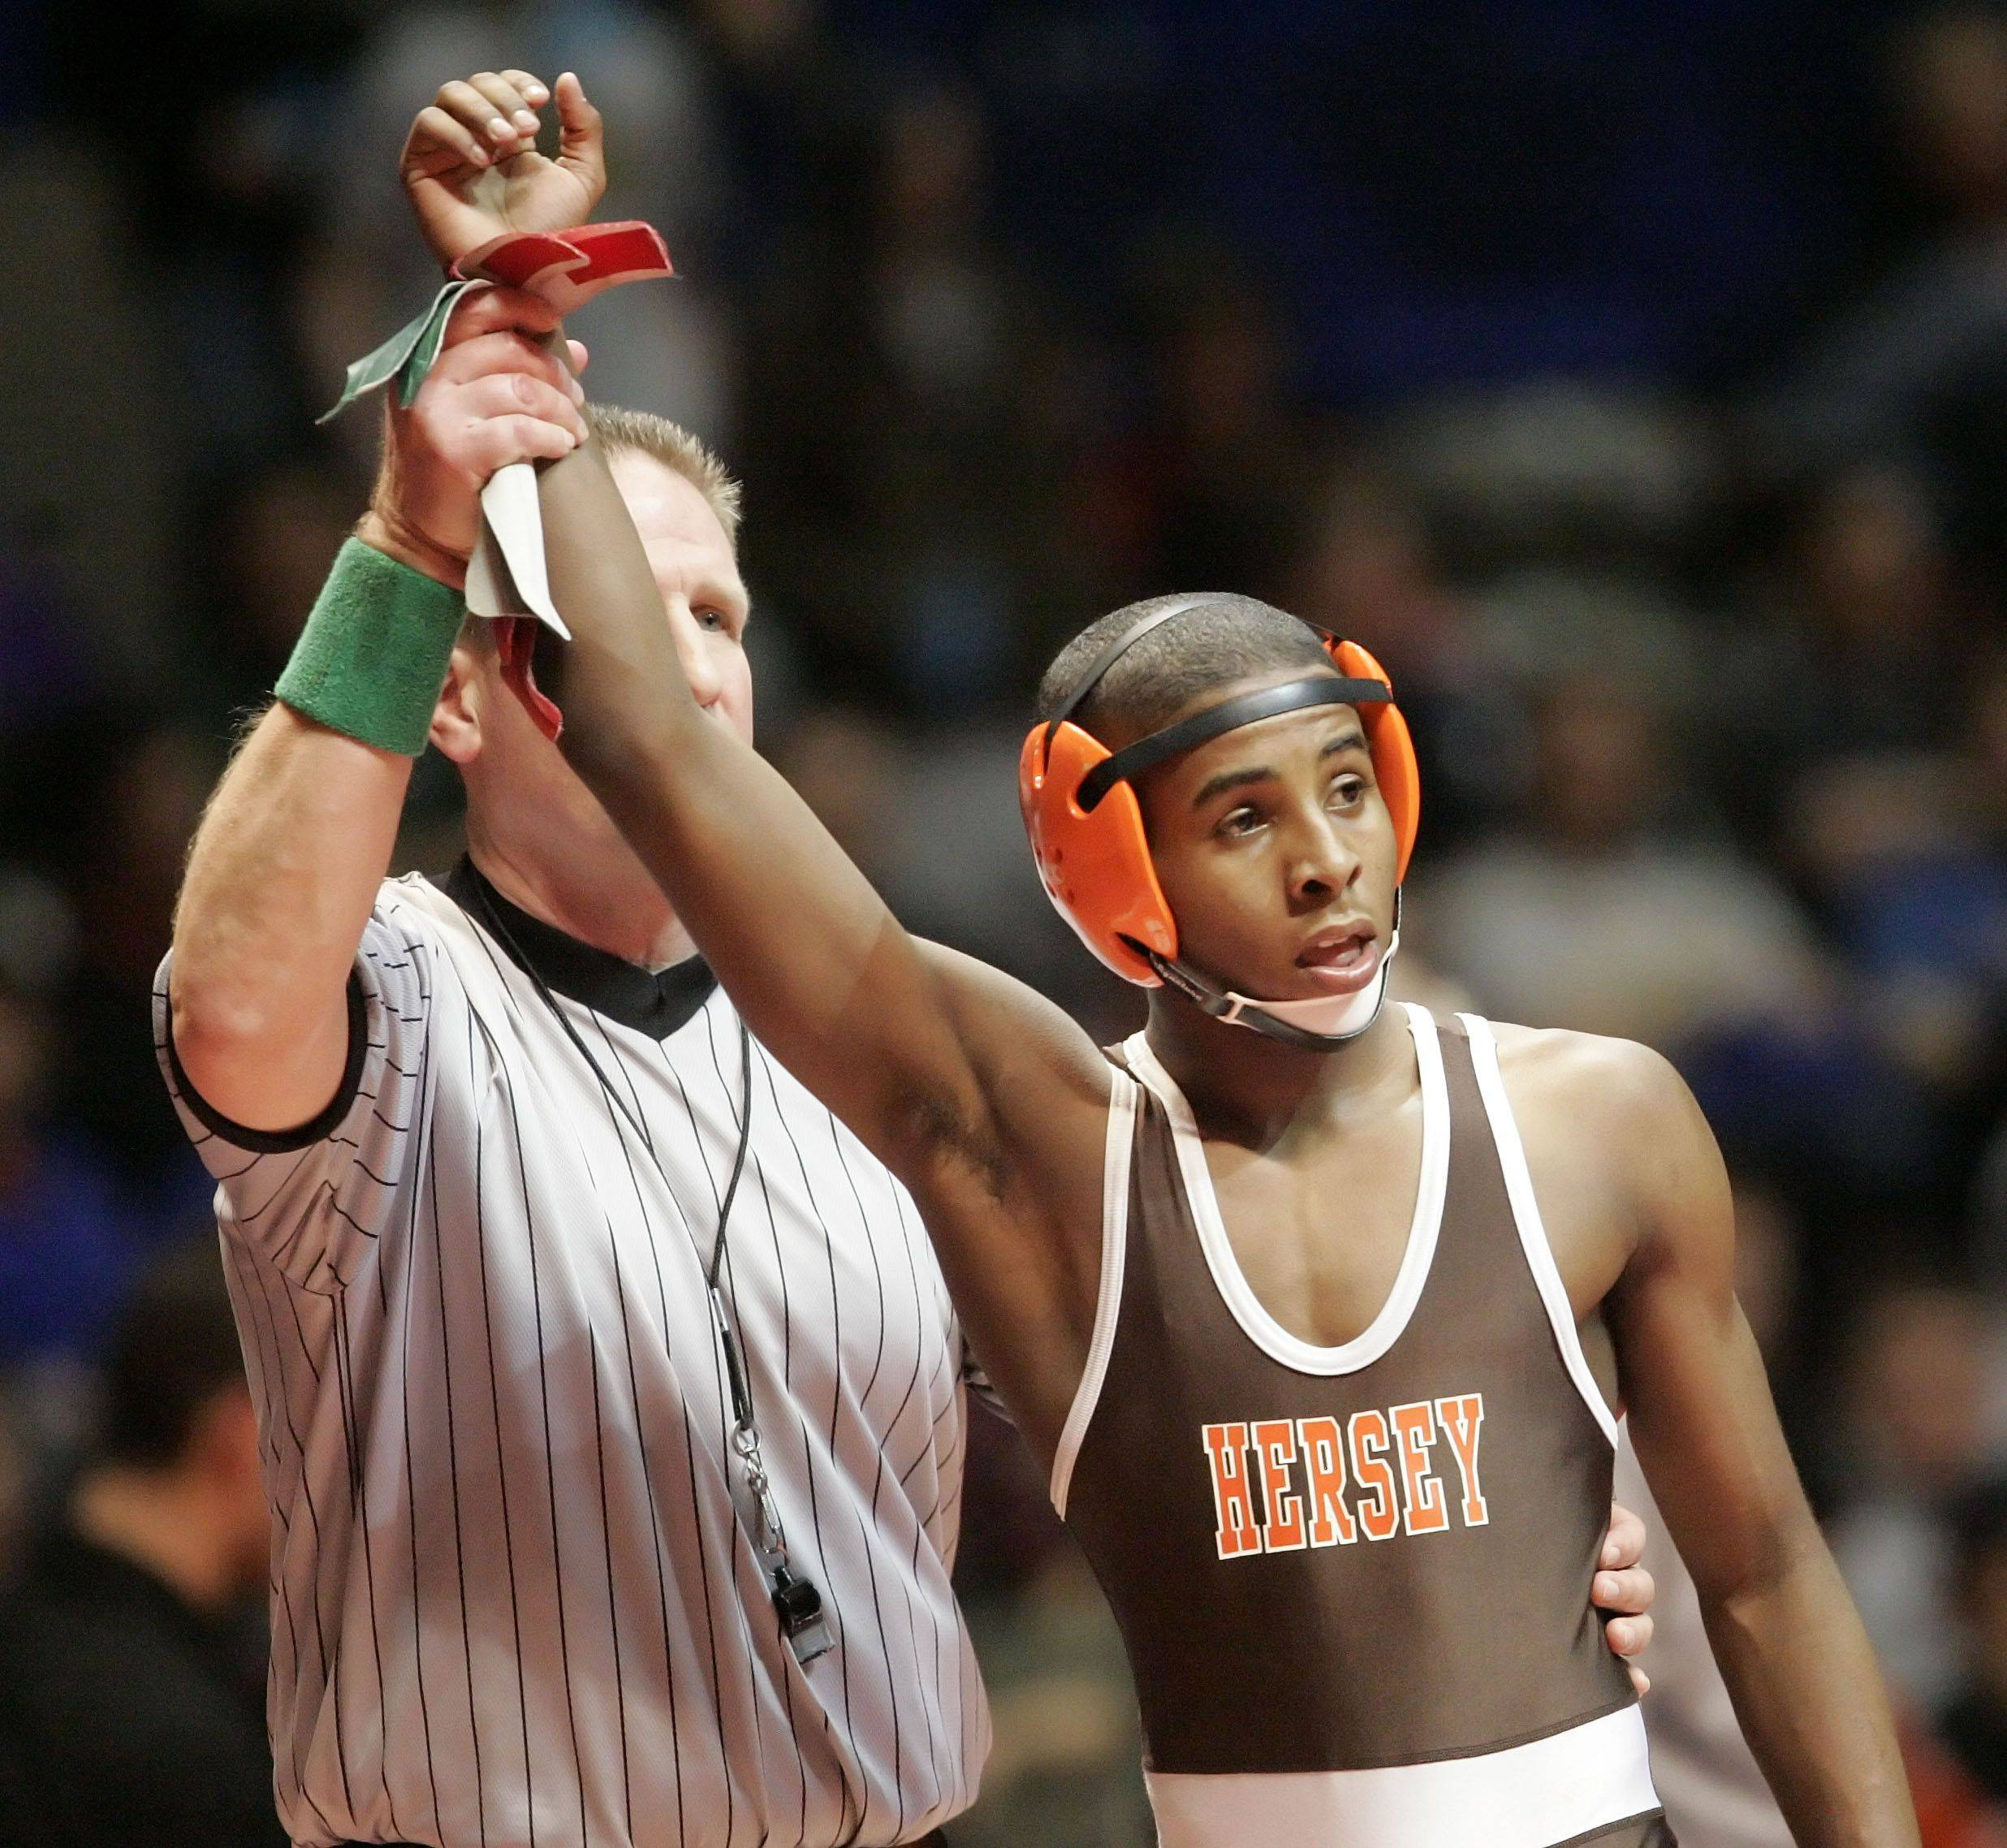 Hersey's Stephfon Scales won his match against Bolingbrook's Frankie Campos at 119 pounds in the 3a wrestlebacks during state wrestling Friday in Champaign.